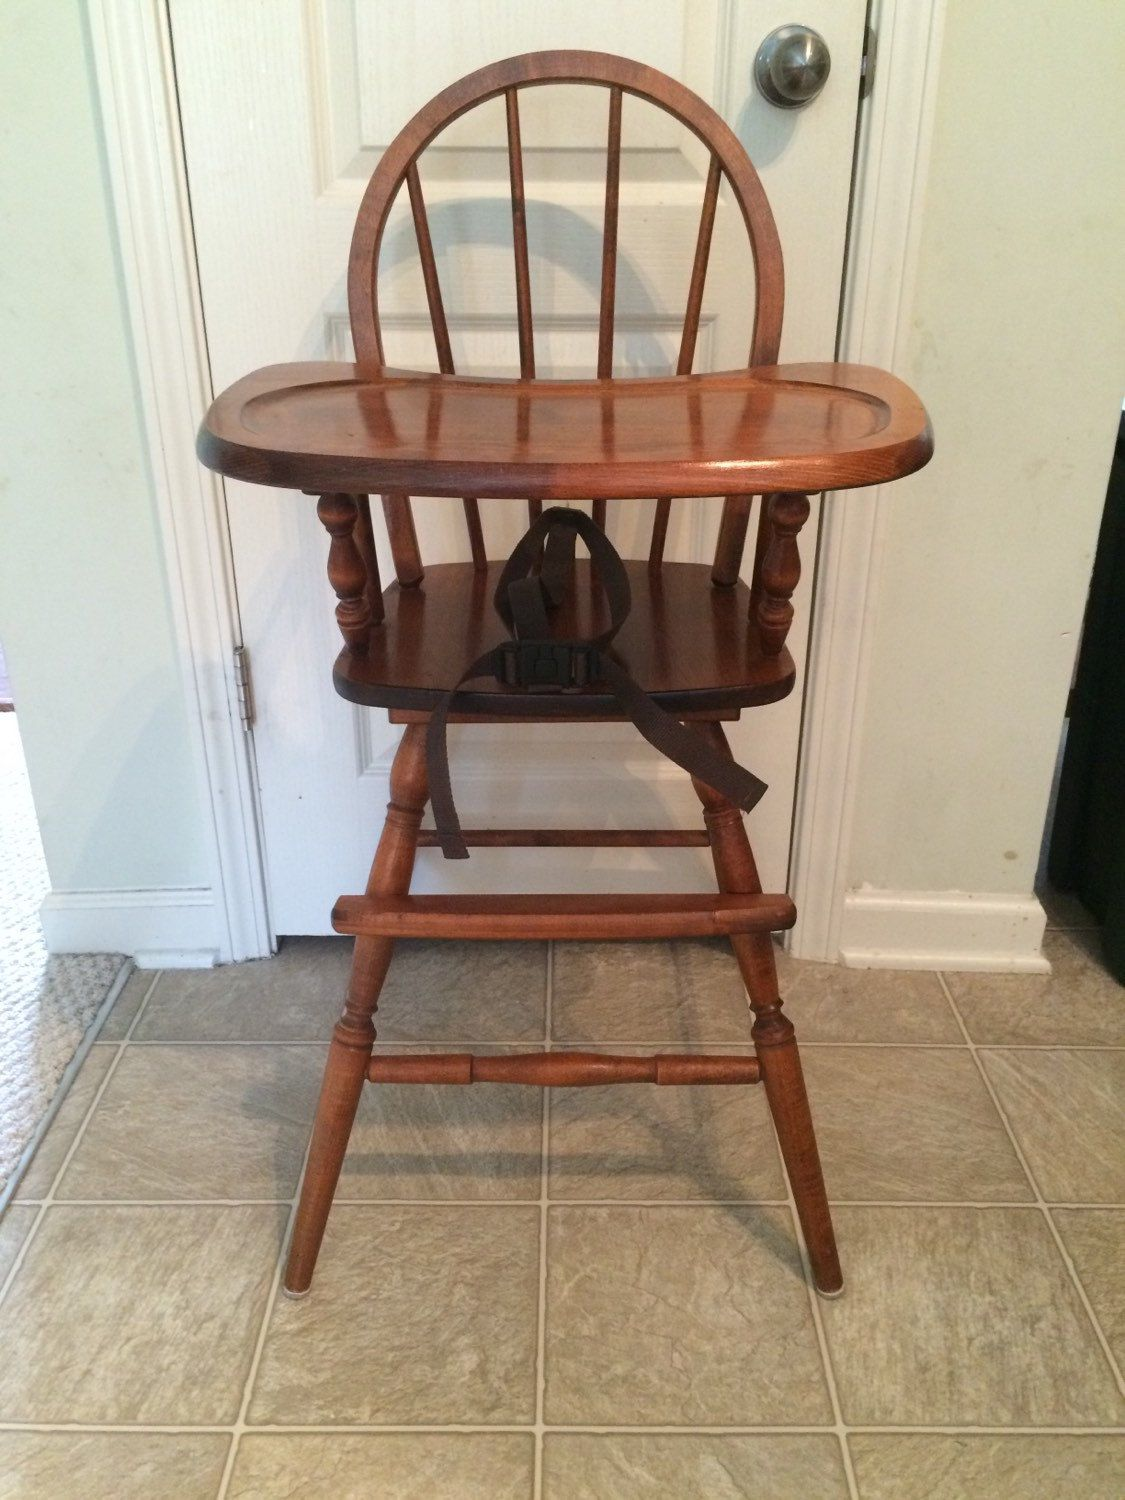 Antique high chair bentwood - Vintage Wooden High Chair Jenny Lind Antique High Chair Vintage High Chair Custom Painted High Chair 1st Birthday Smashcake Bentwood